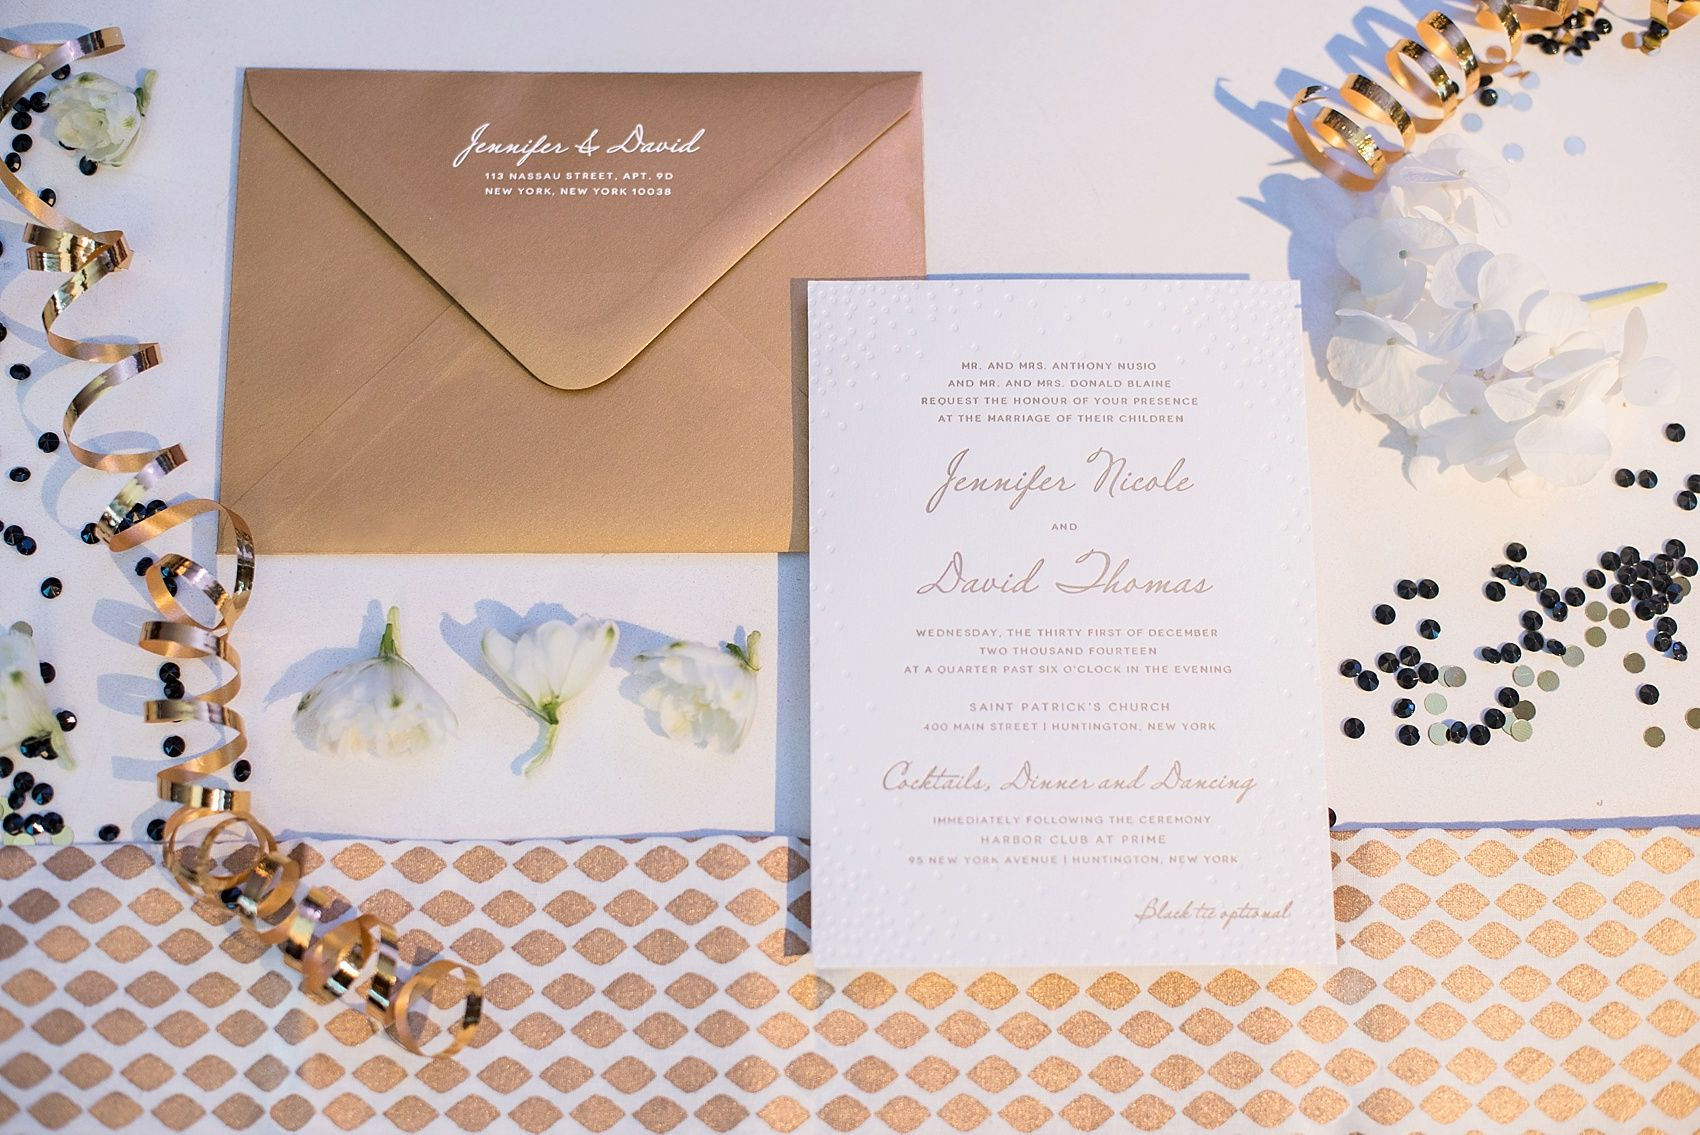 Wedding Invitation Envelope Addressing Options By Raleigh Photographer Mikkel Paige Calligraphy Digital